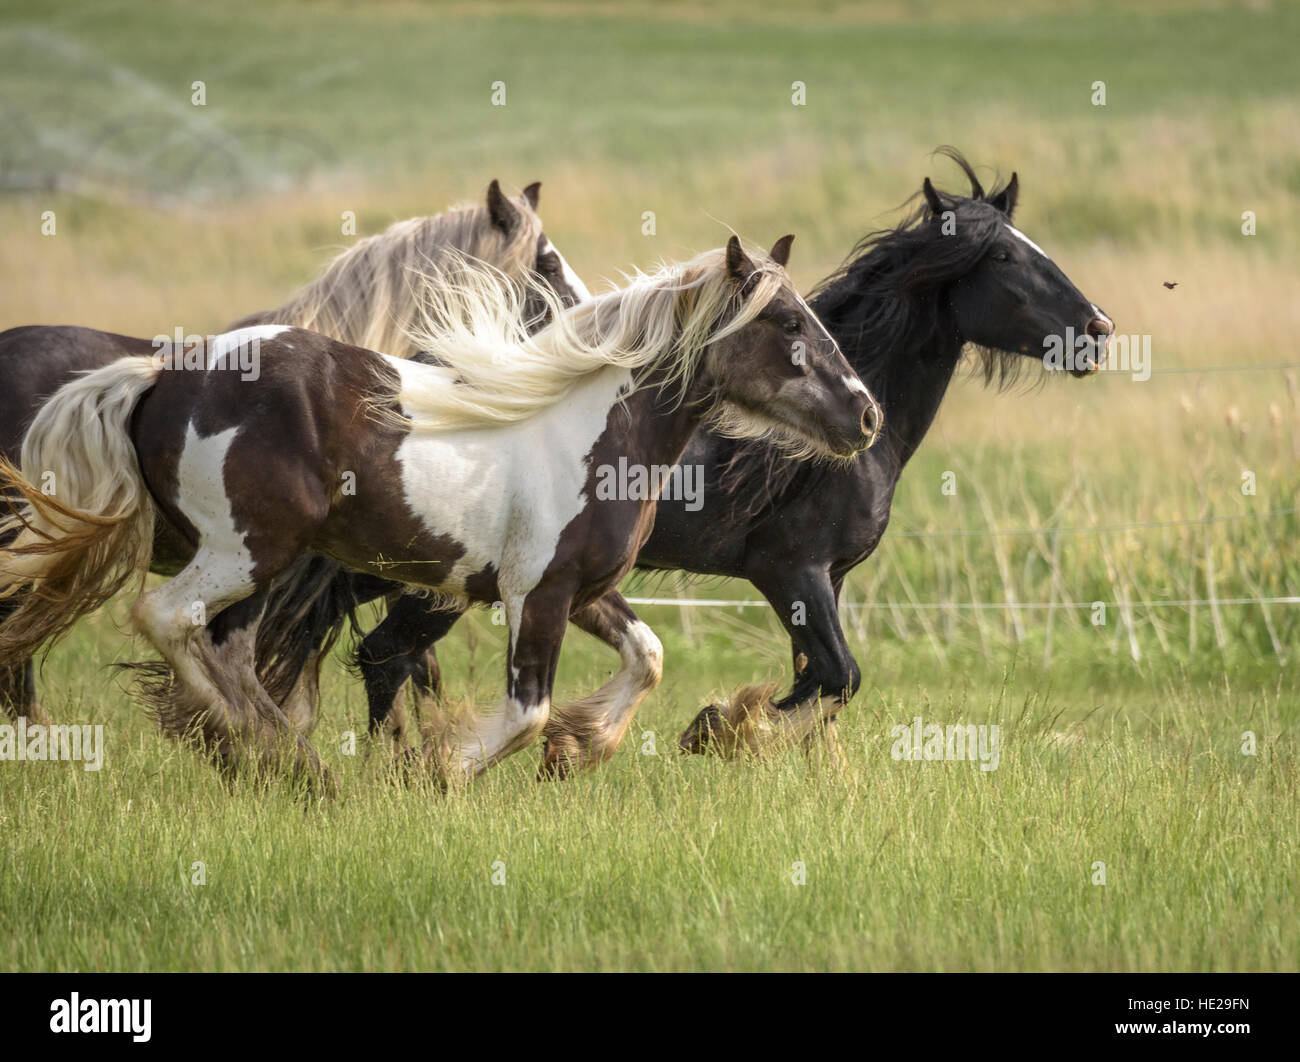 Gypsy Vanner Horses runing in tall grass - Stock Image